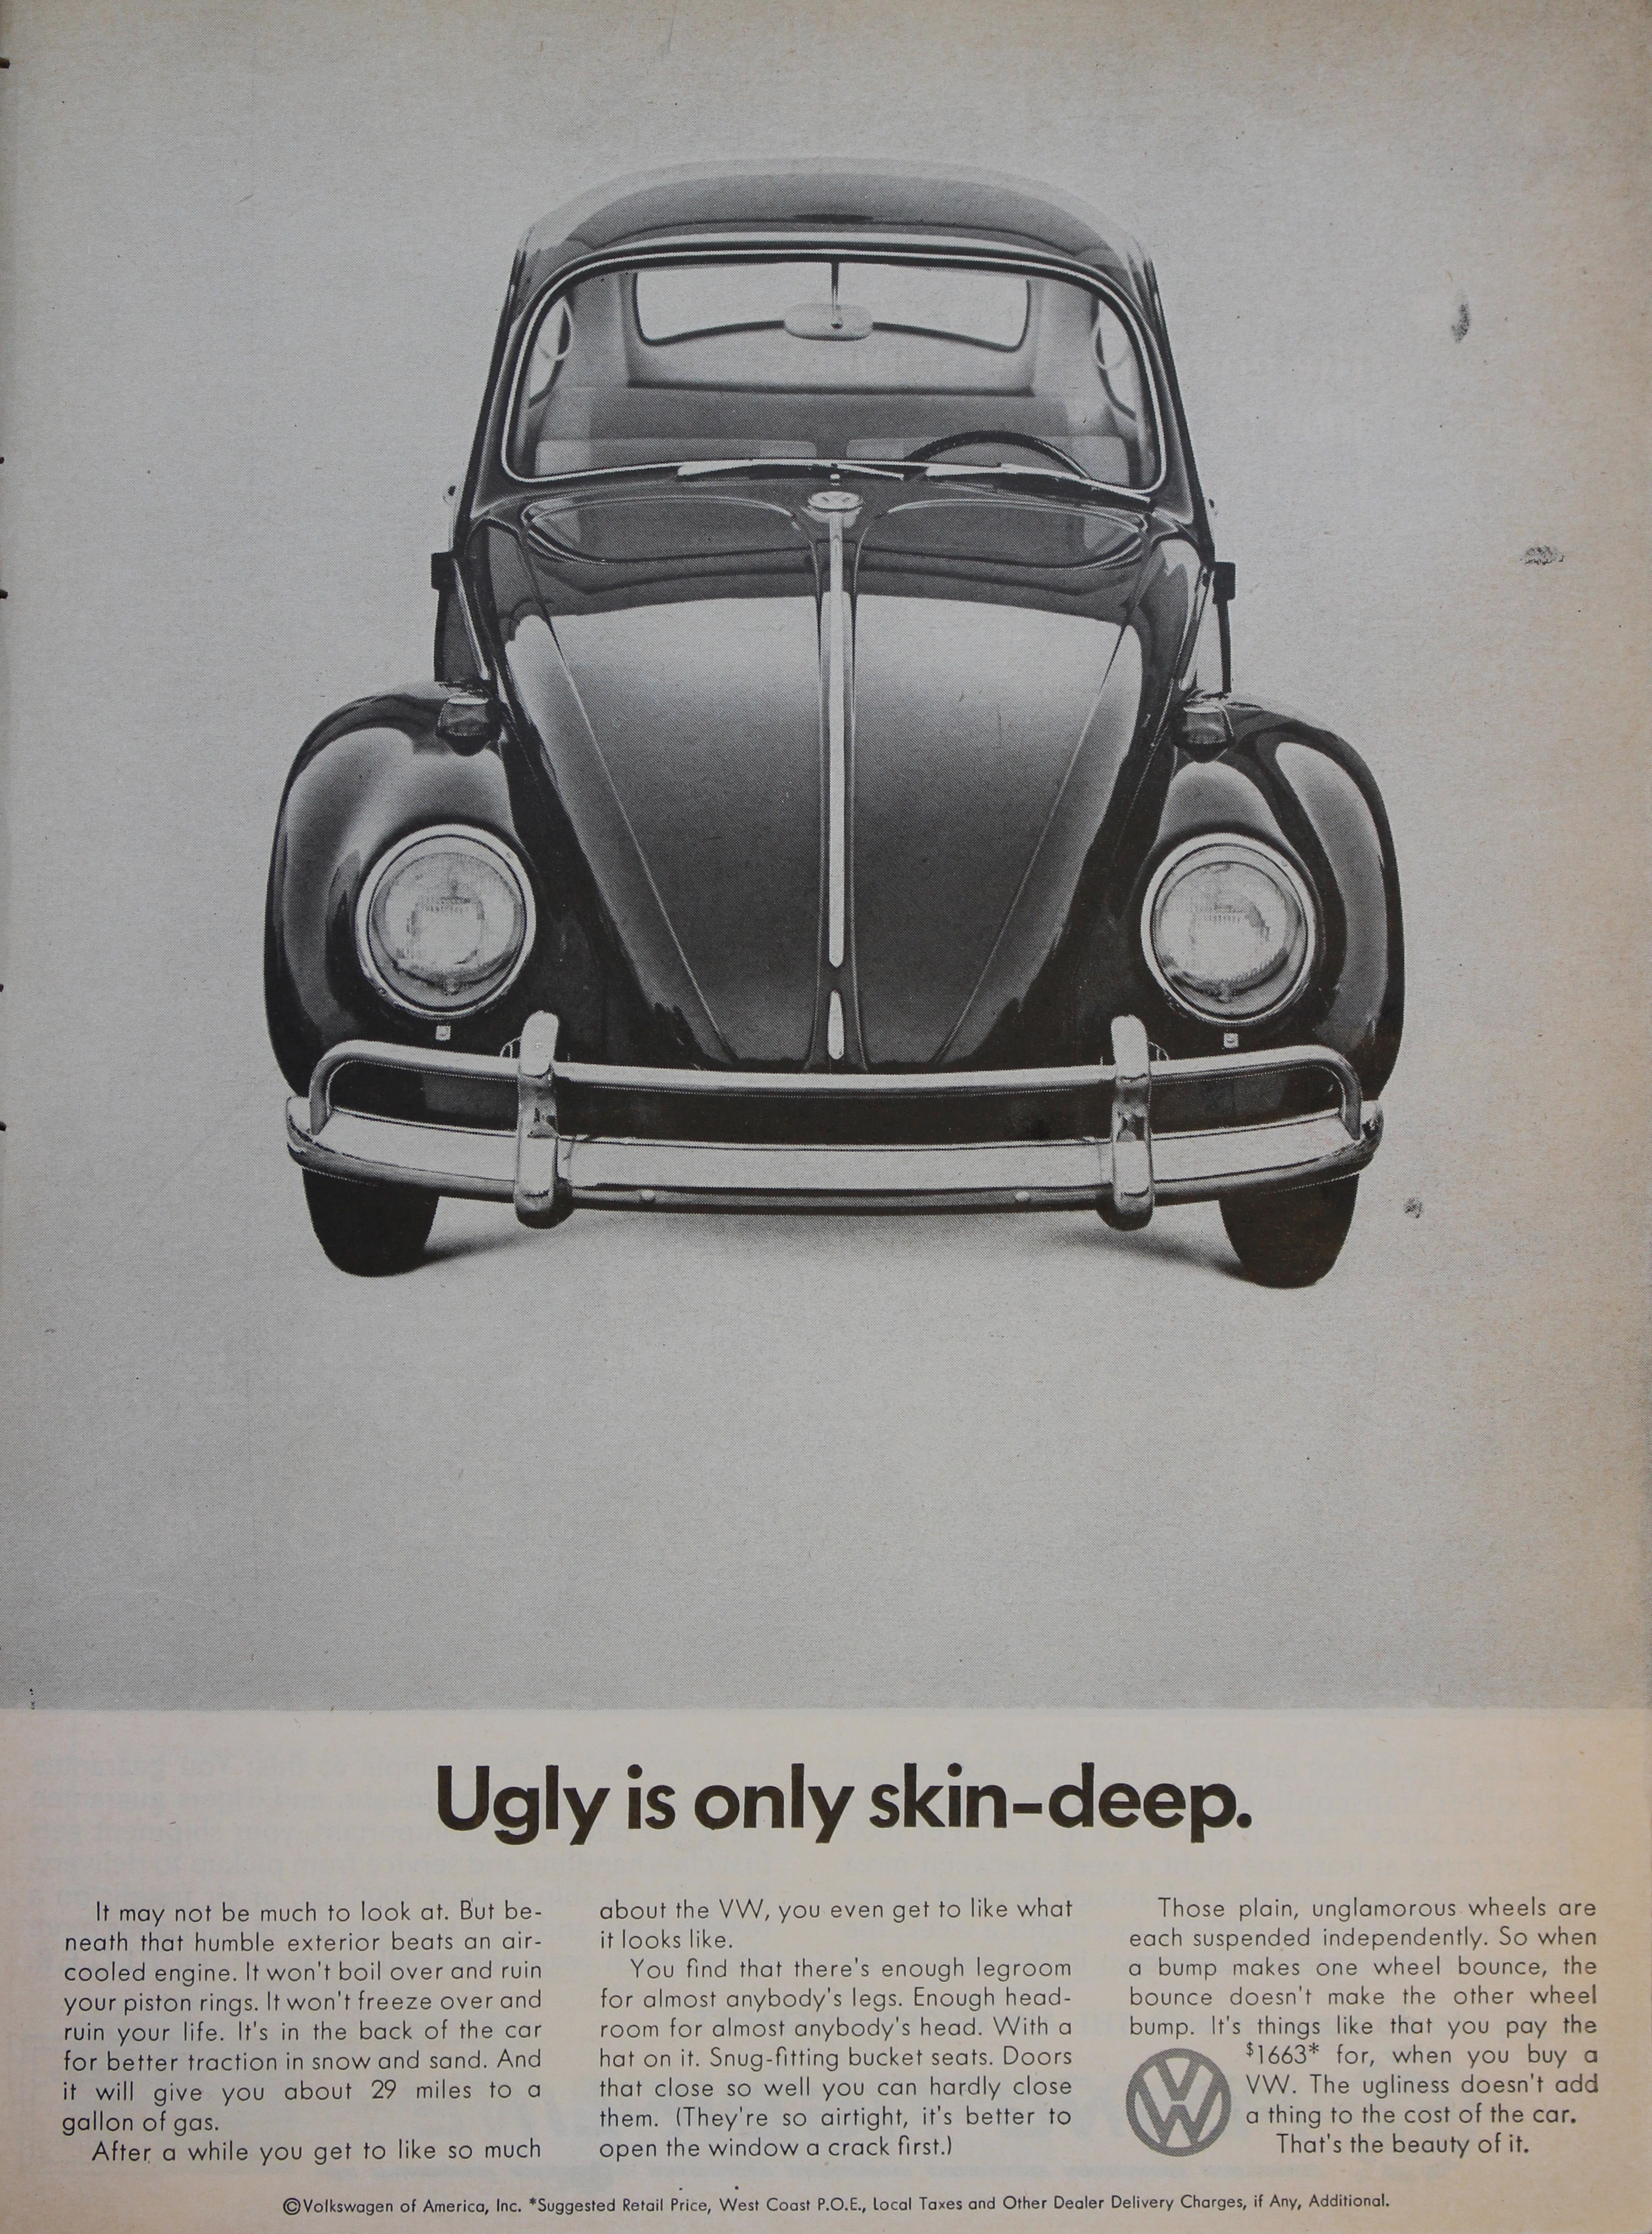 1969 VOLKSWAGEN BEETLE Ugly As Ever VINTAGE AD VW Doesn/'t Do It Again